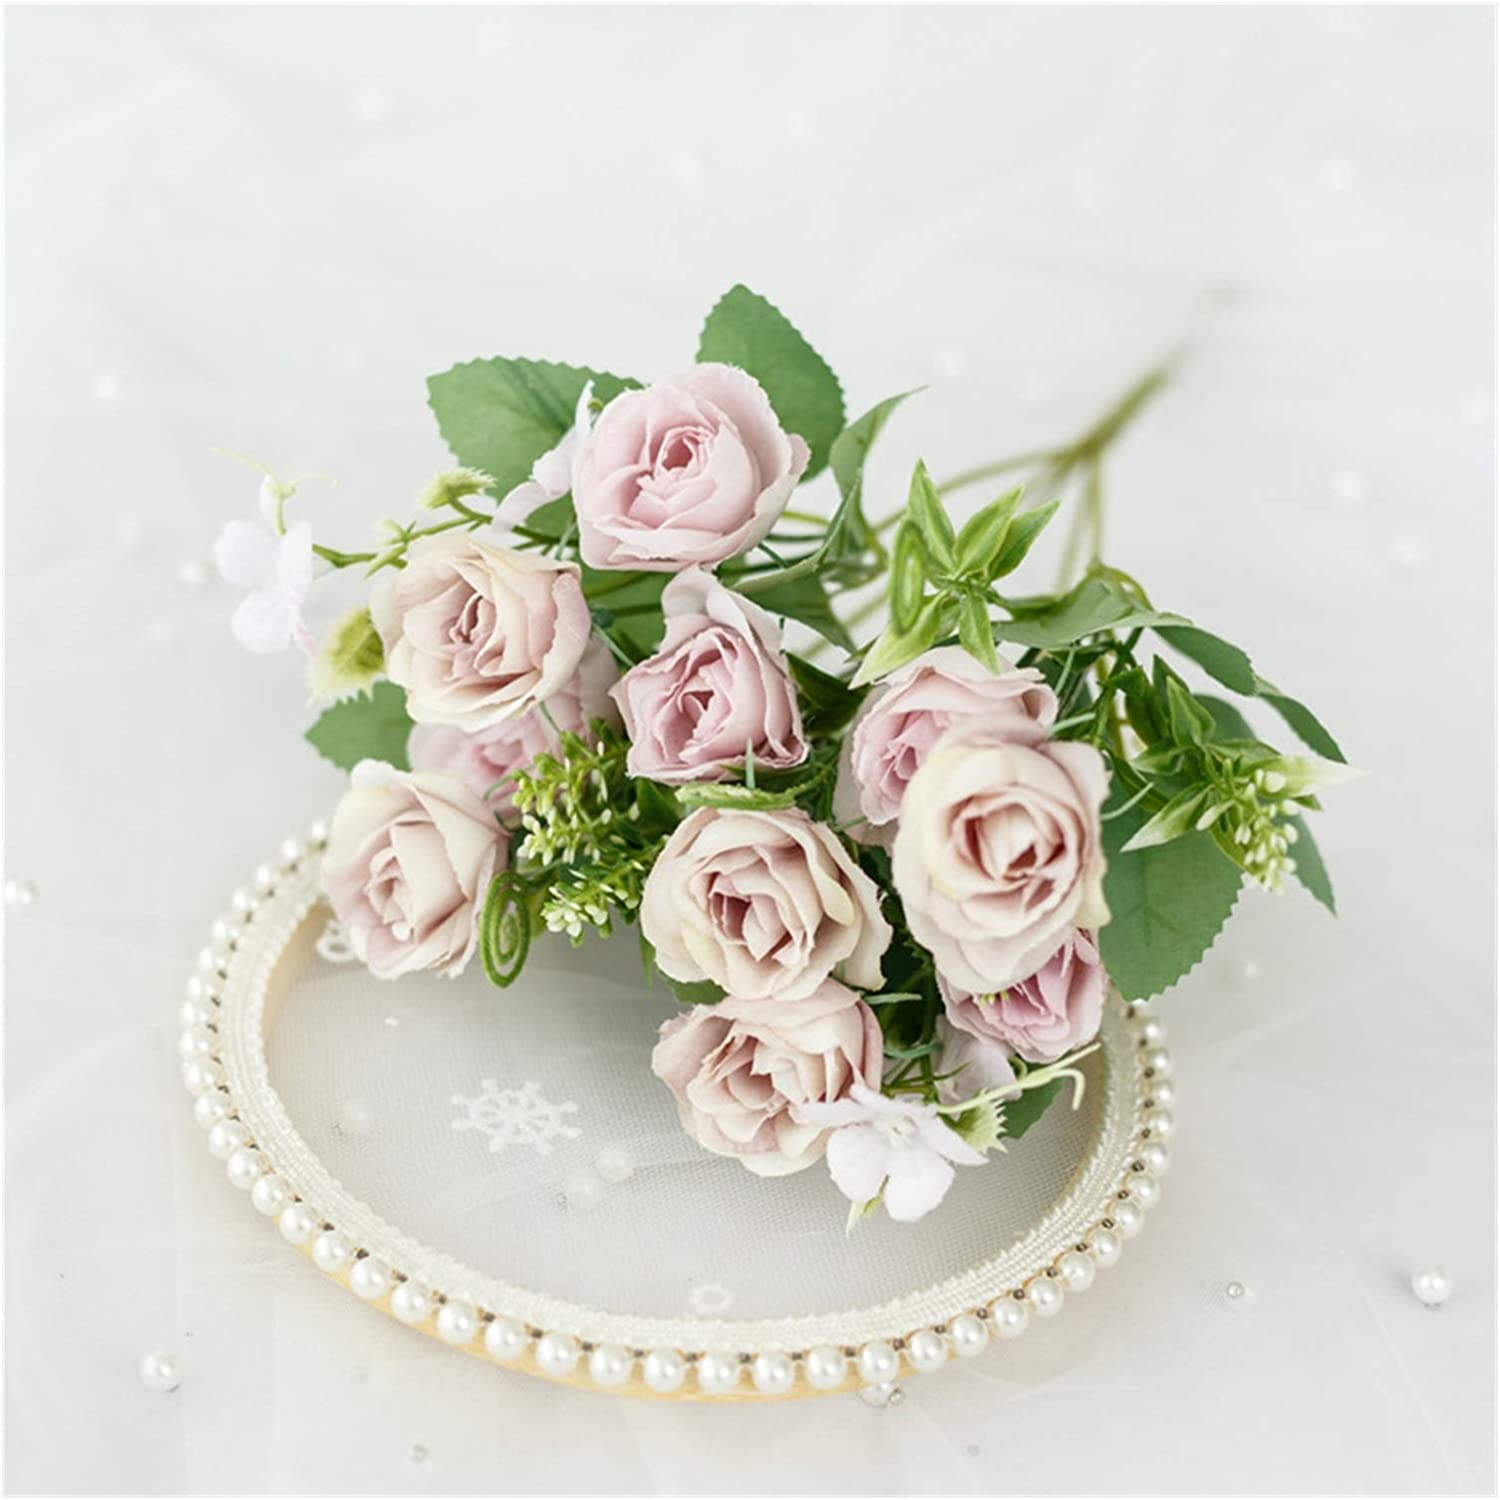 Direct sale of manufacturer JSJJAES Artificial Flowers 10 Beautif Heads Los Angeles Mall Rose Silk